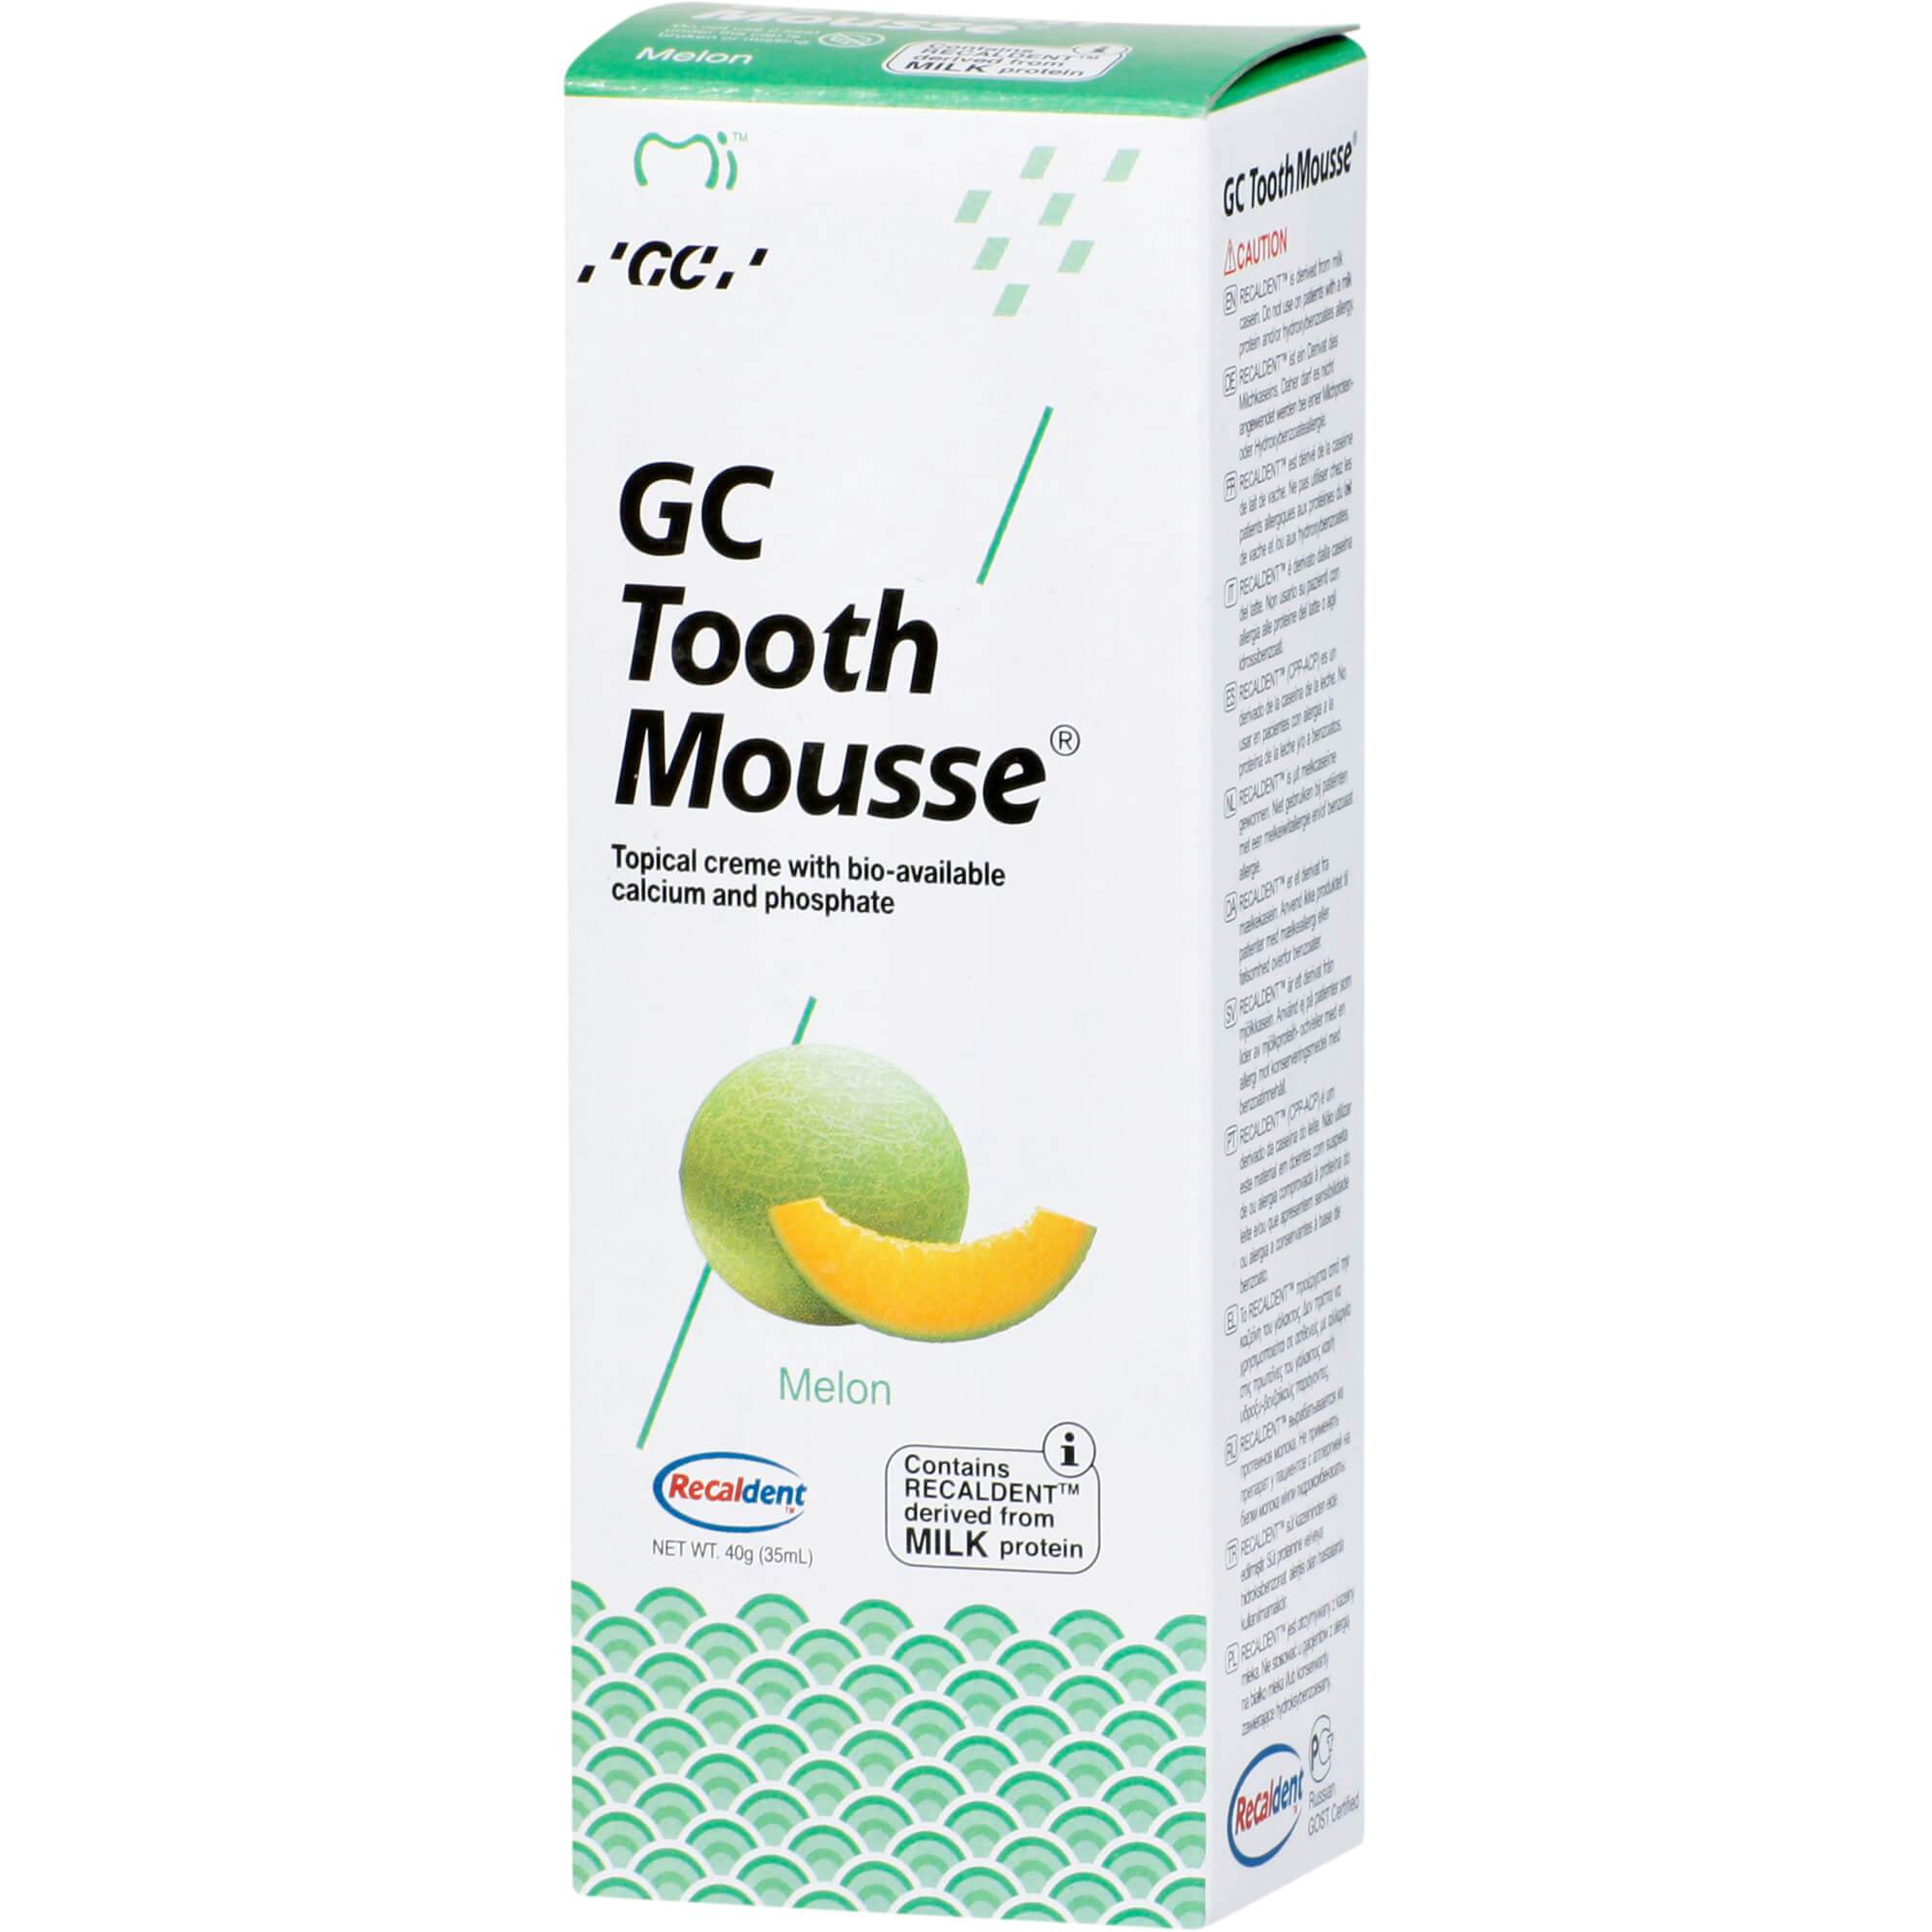 GC Tooth Mousse Melone